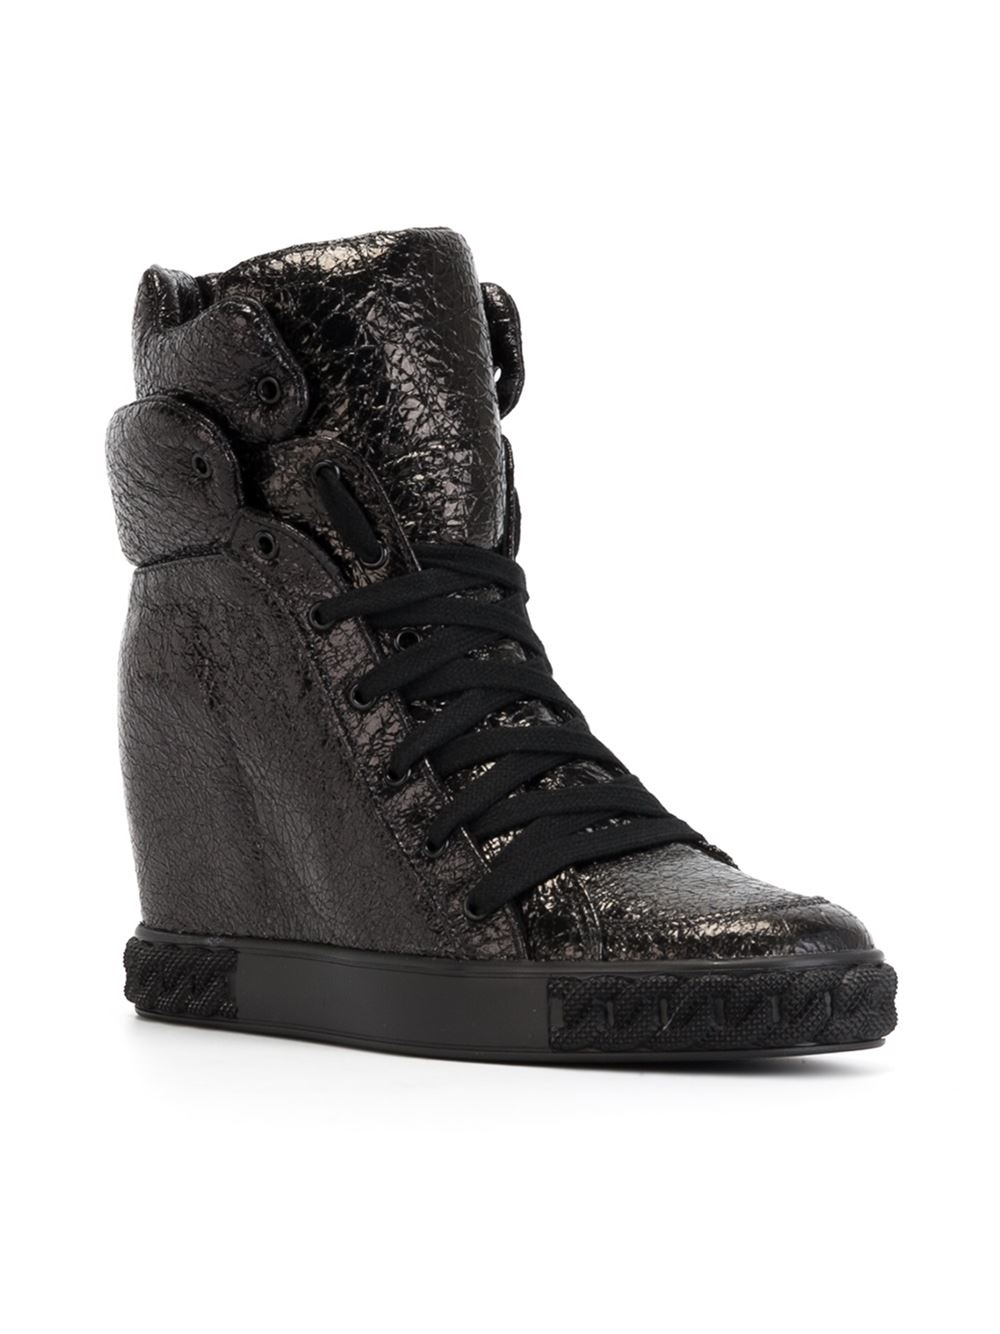 casadei hi top wedge sneakers in black lyst. Black Bedroom Furniture Sets. Home Design Ideas